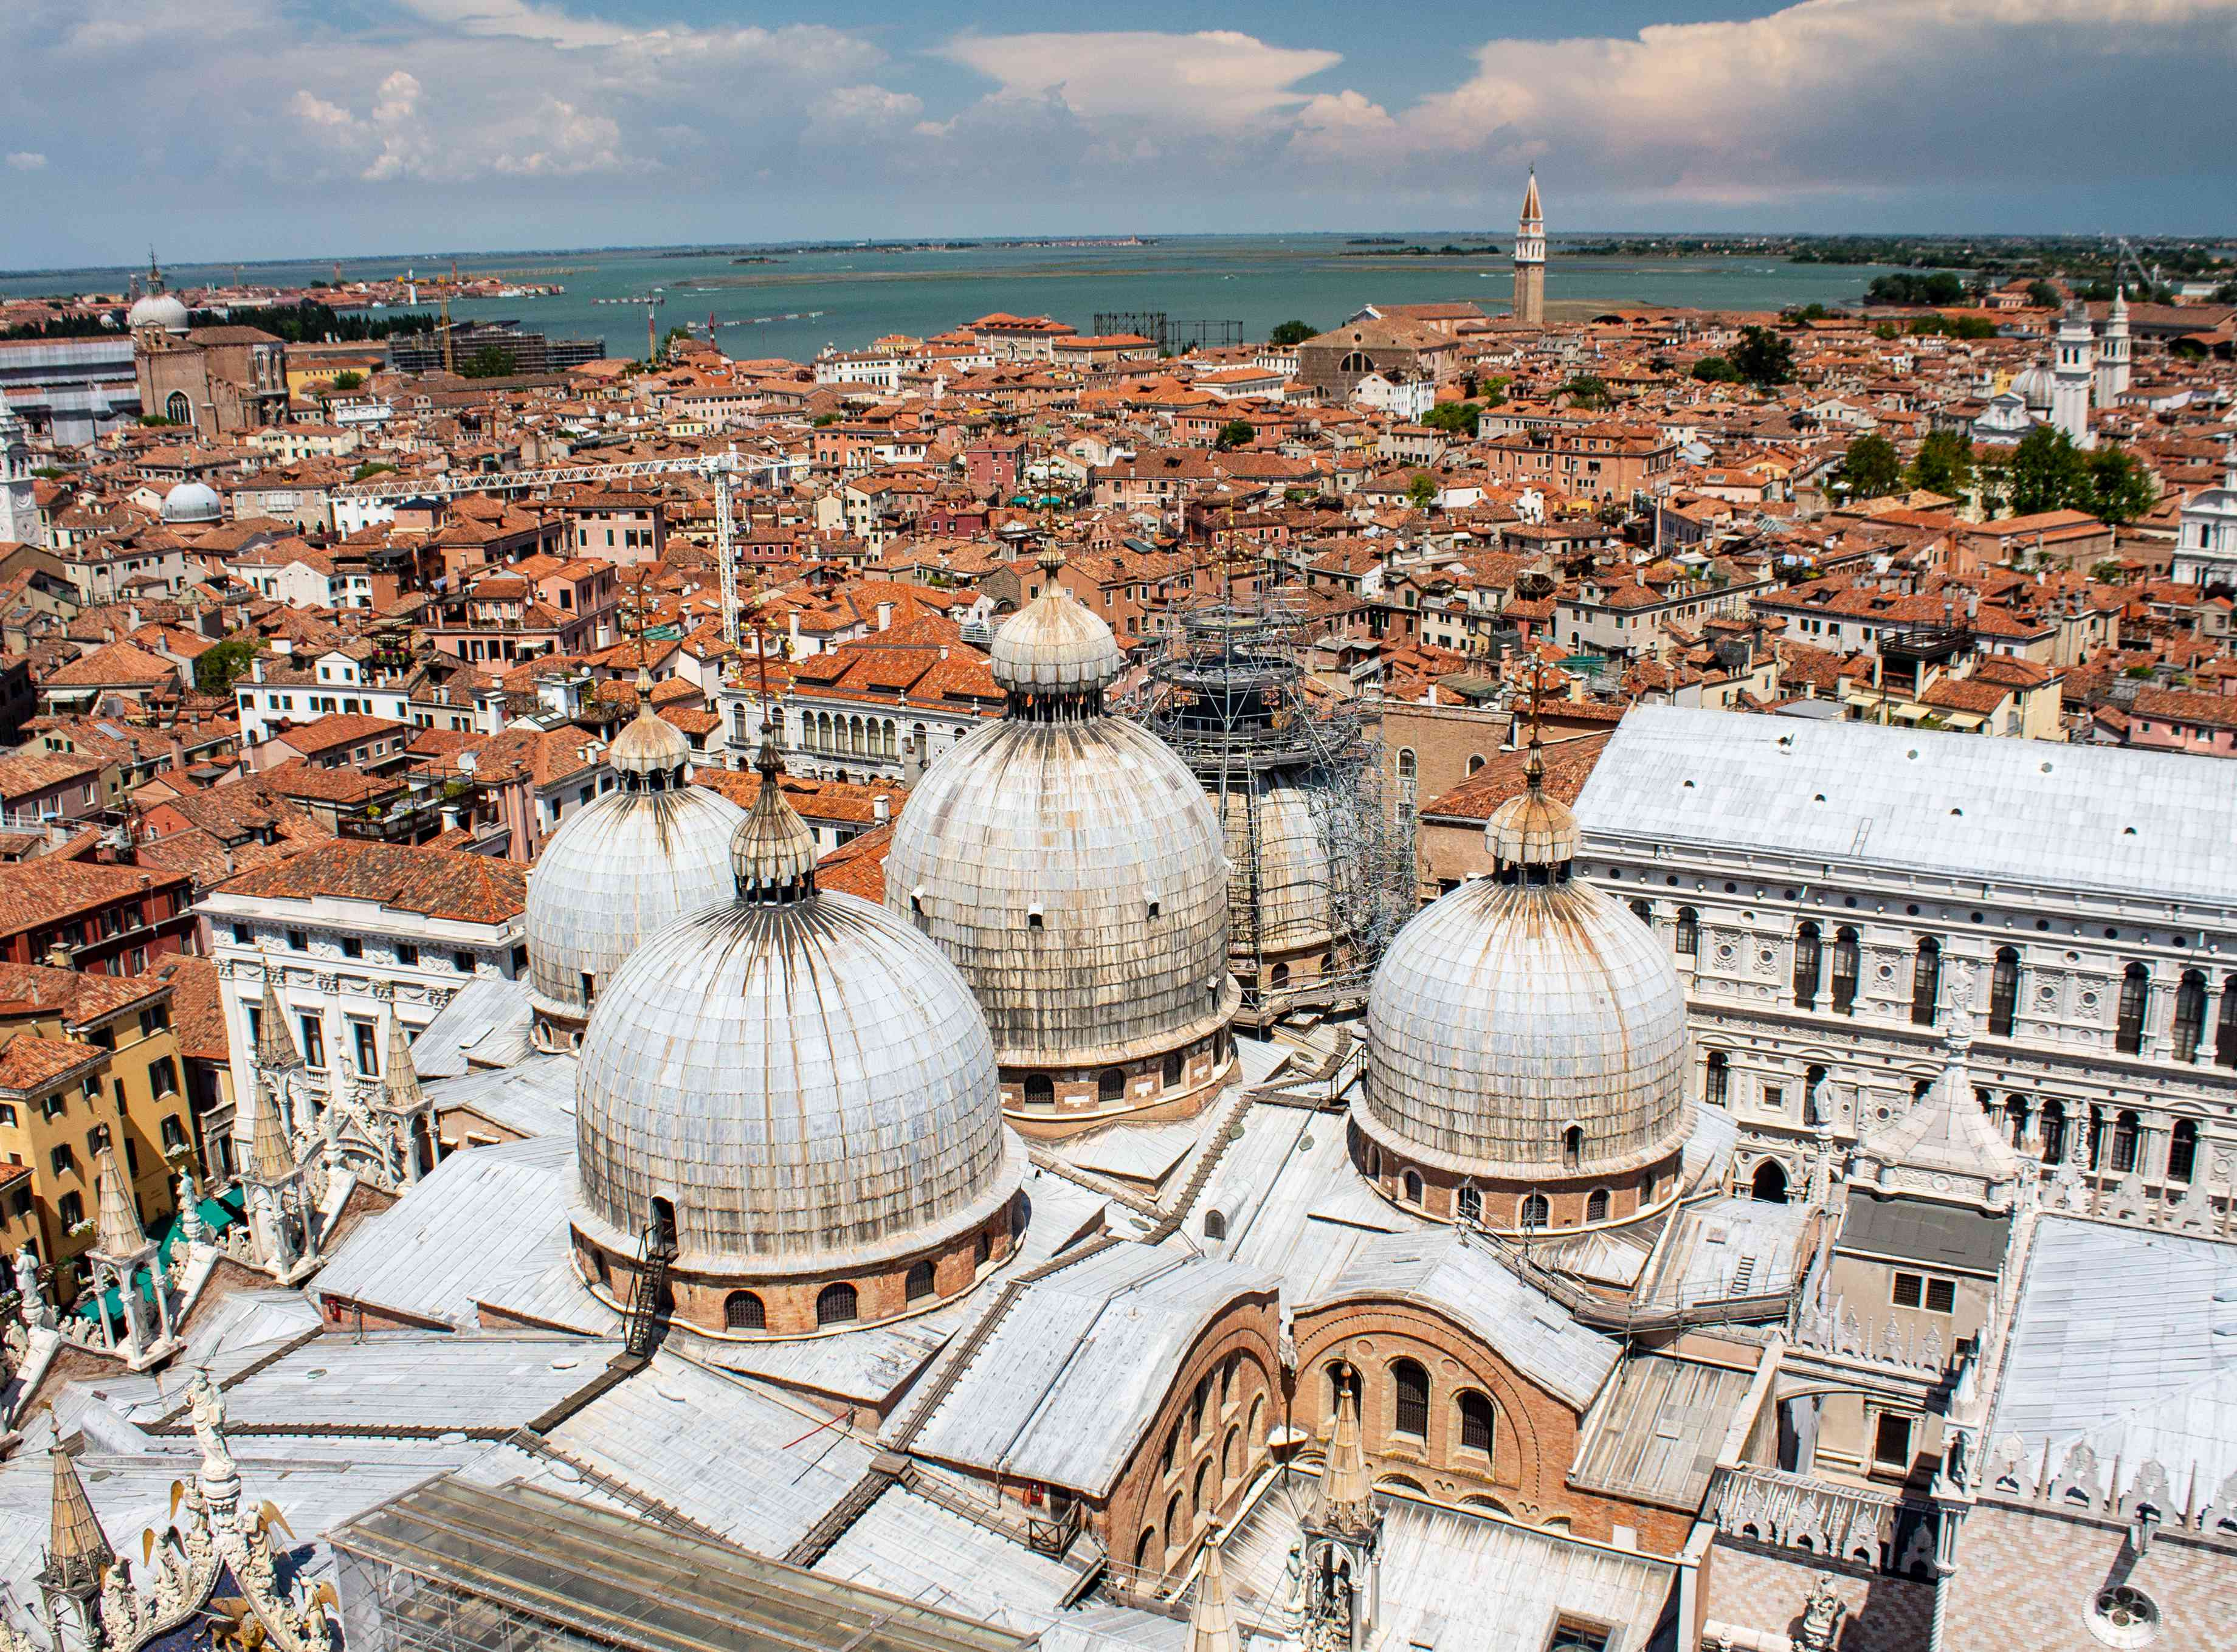 Aerial view of the top of Basilica San Marco